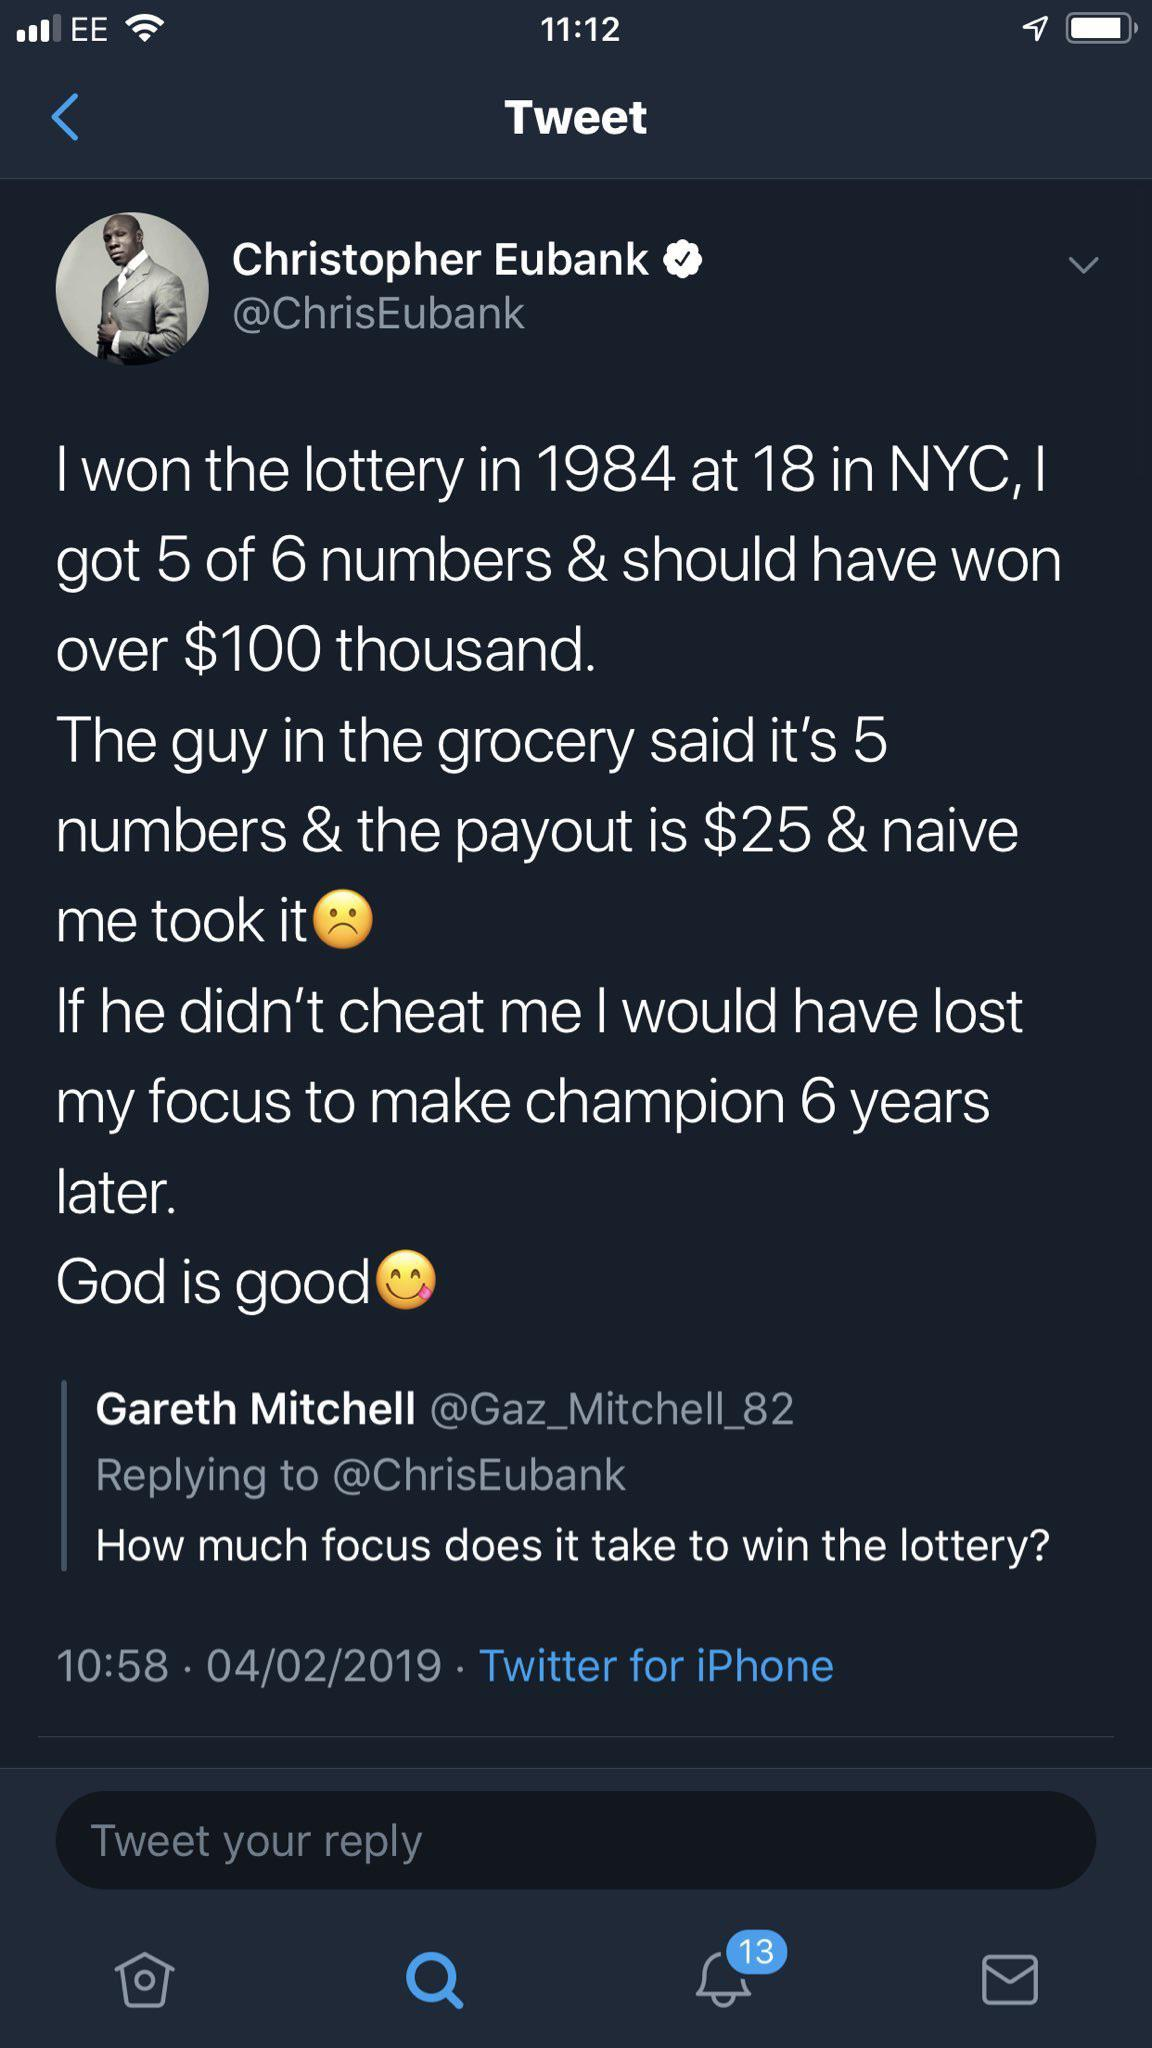 .u EE 'a? 11:12 4 E» < Tweet 9 . Christopher Eubanko V _' @ChrisEubank I Won The Lottery In 1984 At 18 In NYC, I Got 5 Of 6 Numbers & Should Have Won Over $100 Thousand. The Guy In The Grocery Said It's 5 Numbers & The Payout Is $25 & Naive Me Took ItG If He Didn't Cheat Me I Would Have Lost My Focus To Make Champion 6 Years Later. God Is GoodO Gareth Mitchell @Gaz_Mitche|l_82 Replying To @ChrisEubank How Much Focus Does It Take To Win The Lottery? 10:58 - 04/02/2019 - Twitter For IPhone Tweet Your Reply @ Q 4,9 A https://inspirational.ly